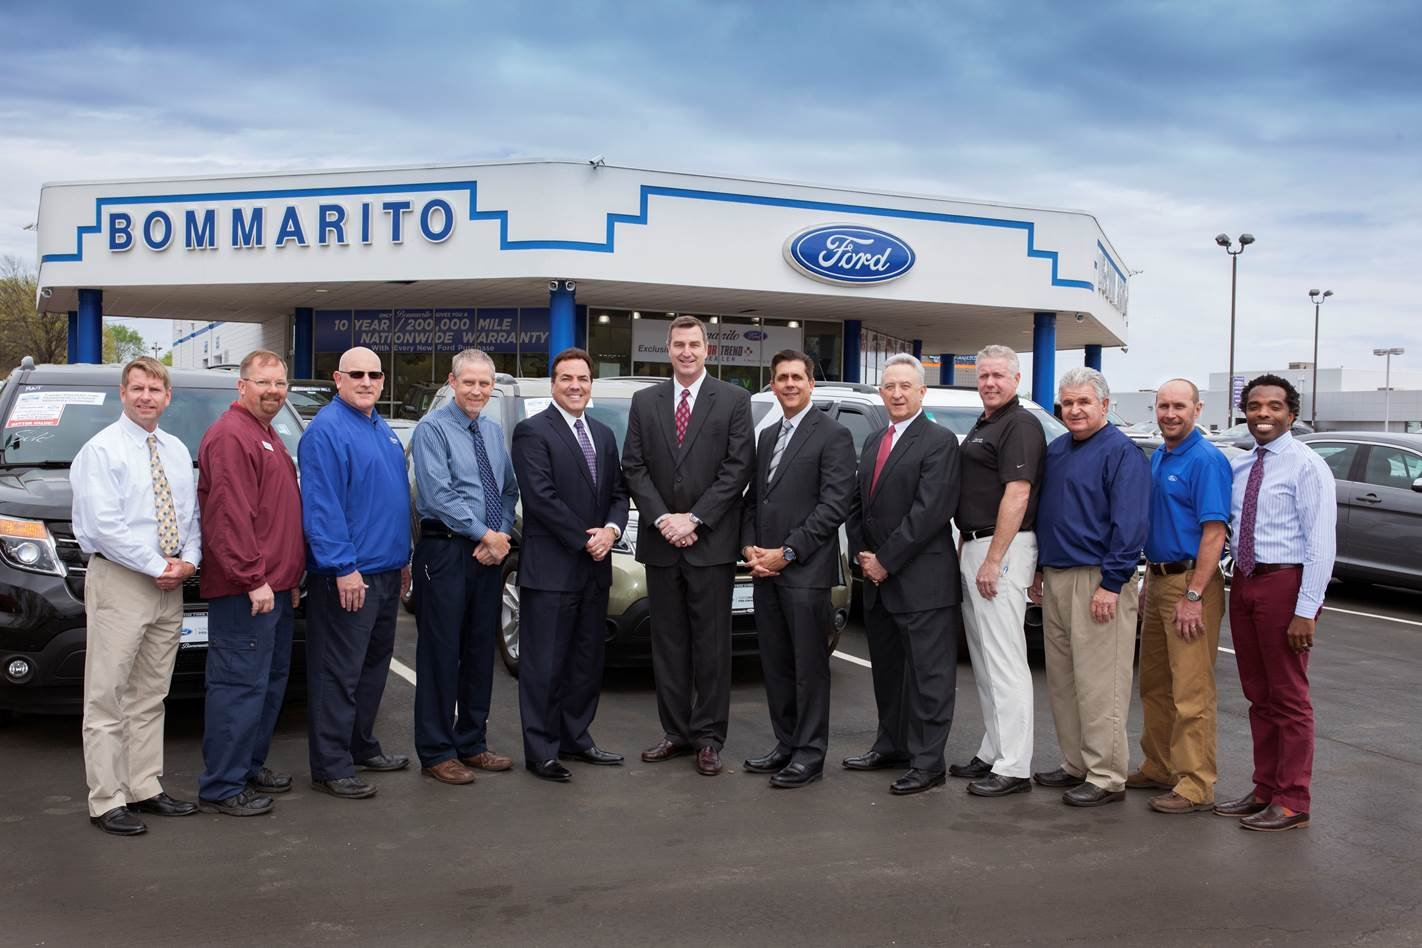 Bommarito Ford dealership staff group photo.